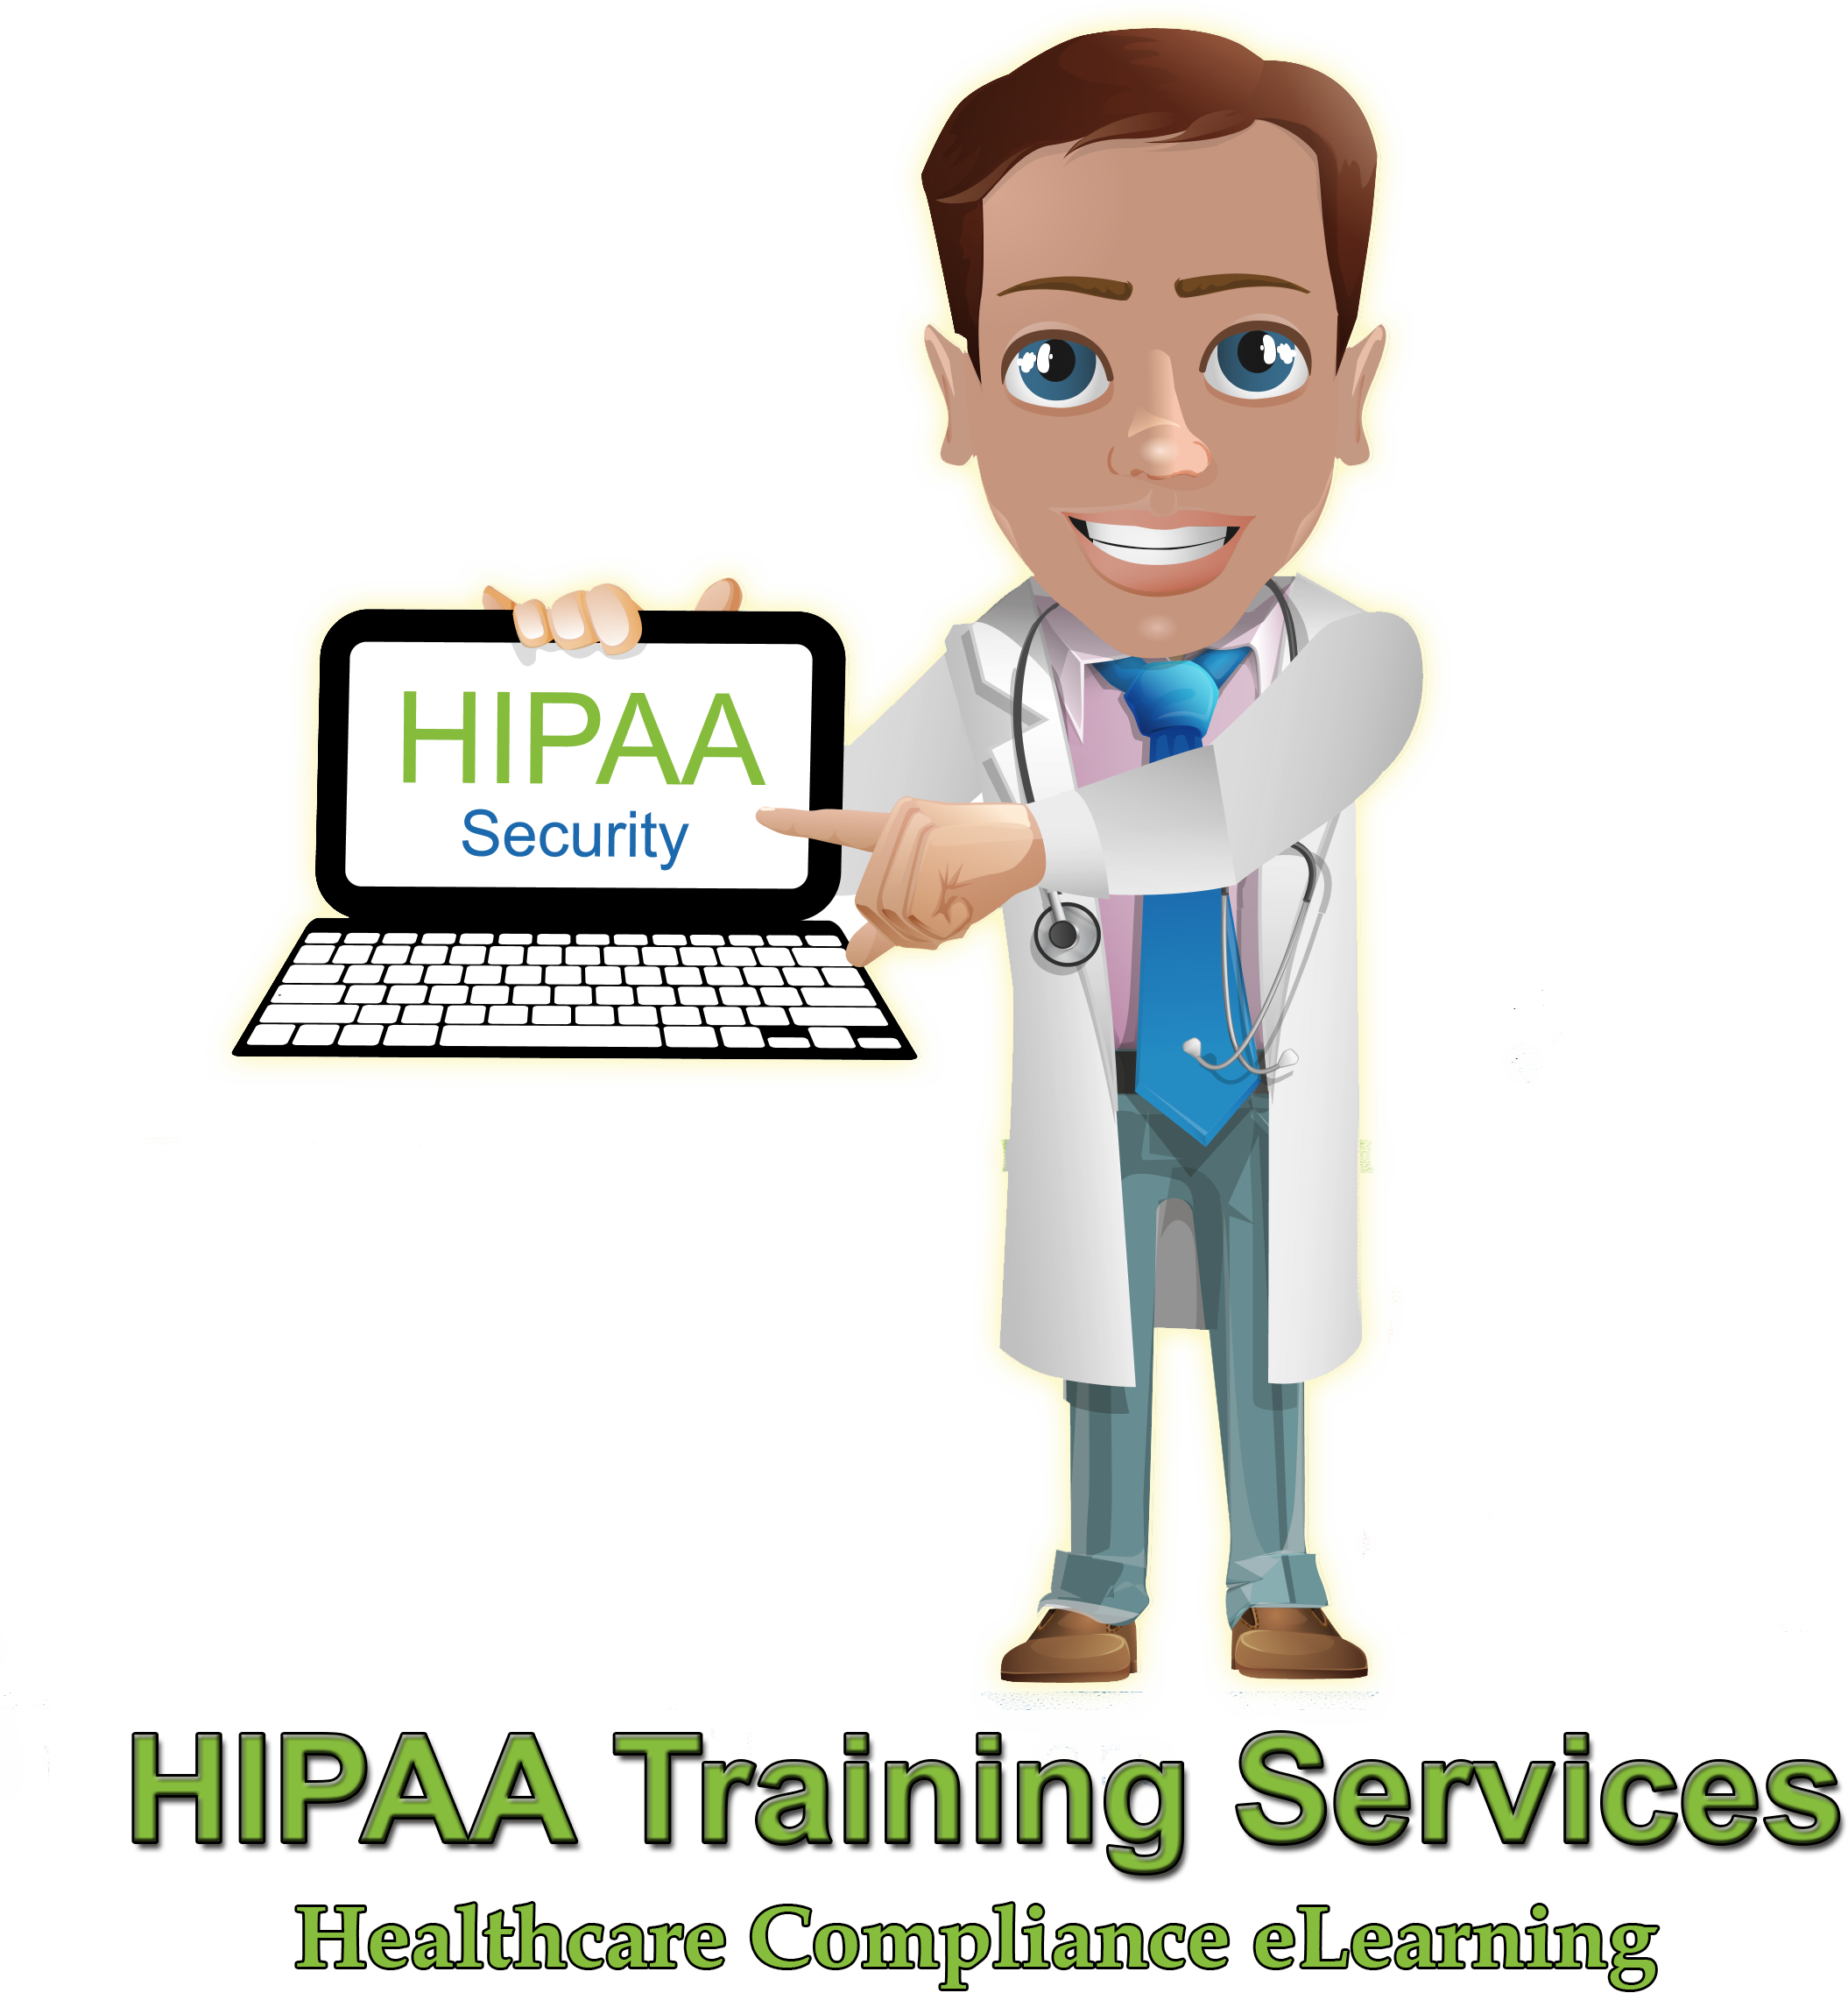 HIPAA Training Services - eLearning